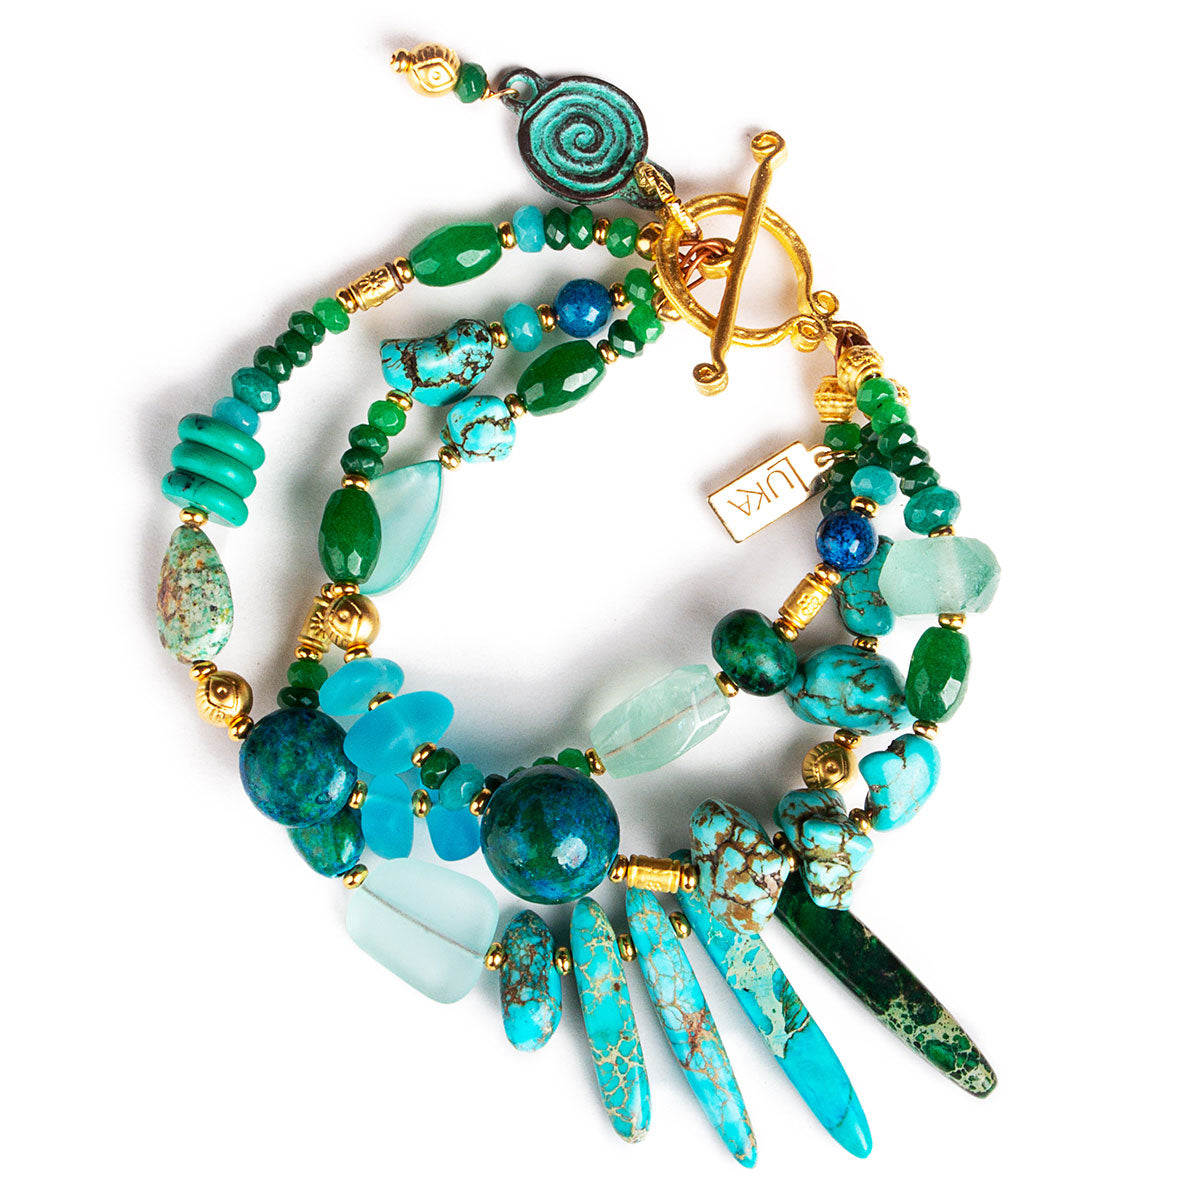 N°689 The Living Sea of Turquoise Dreams Statement Bracelet